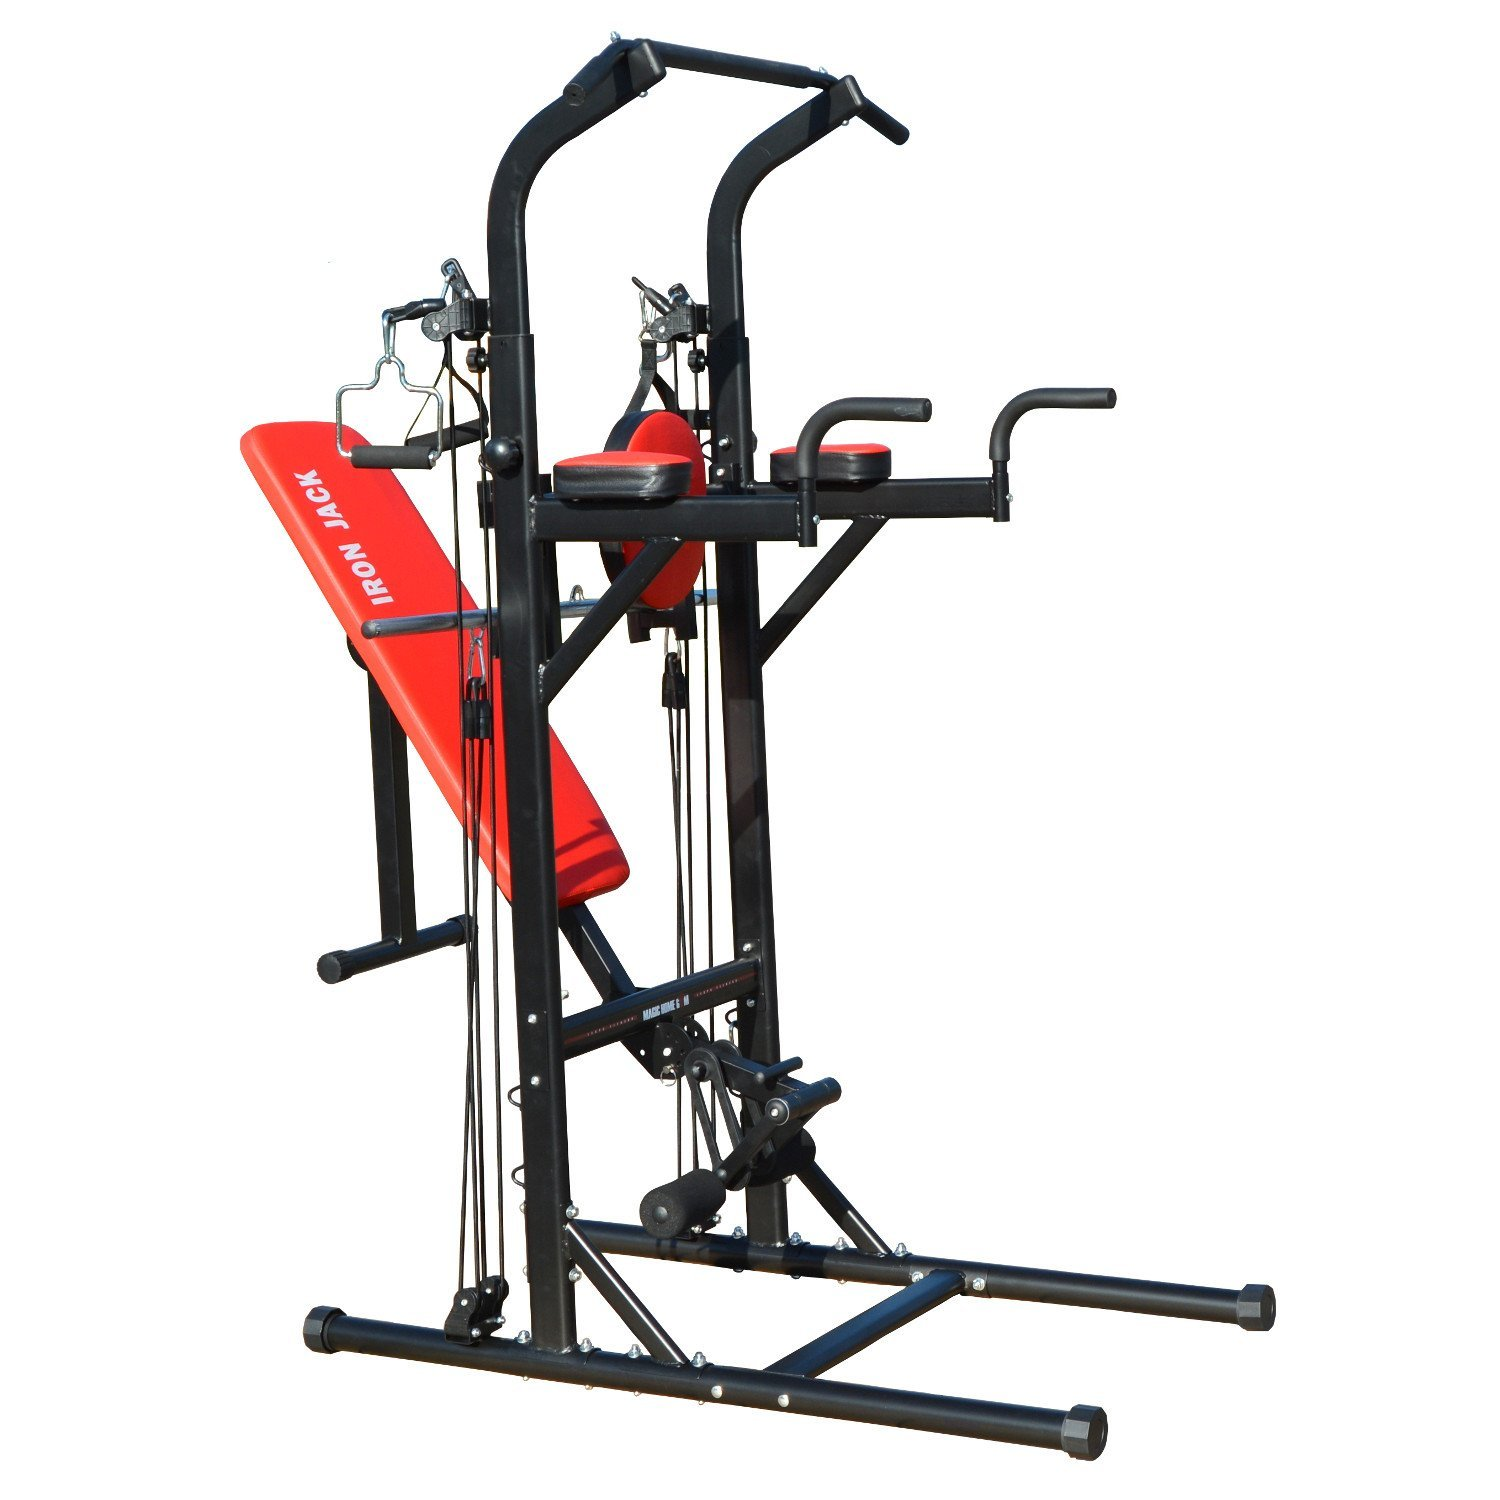 Iron Jack Muli-Function Work Out Exercise Station